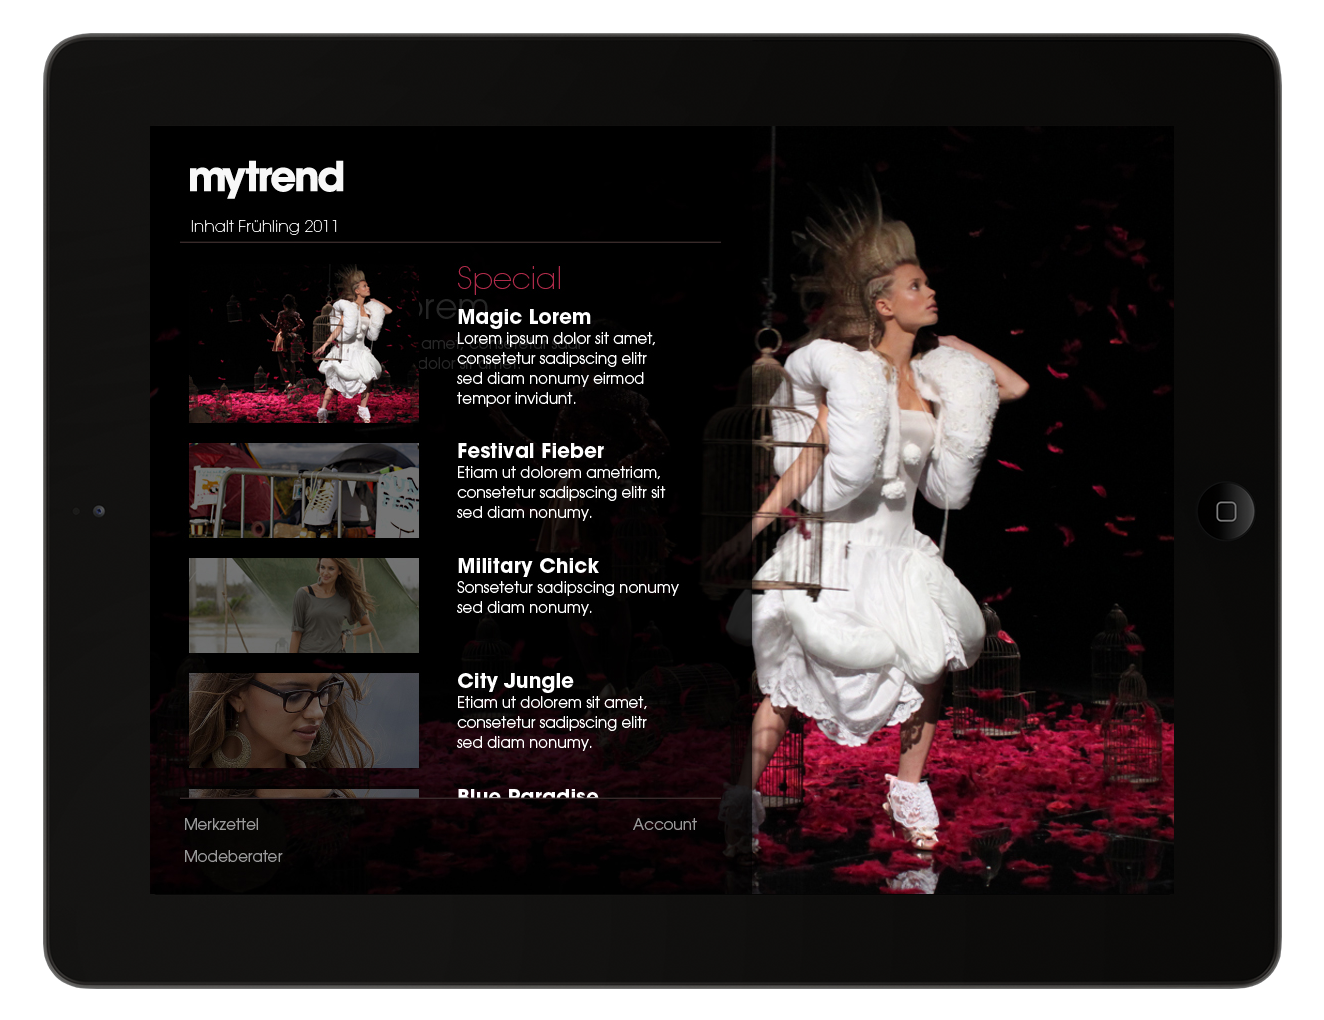 otto_mytrend_app_02